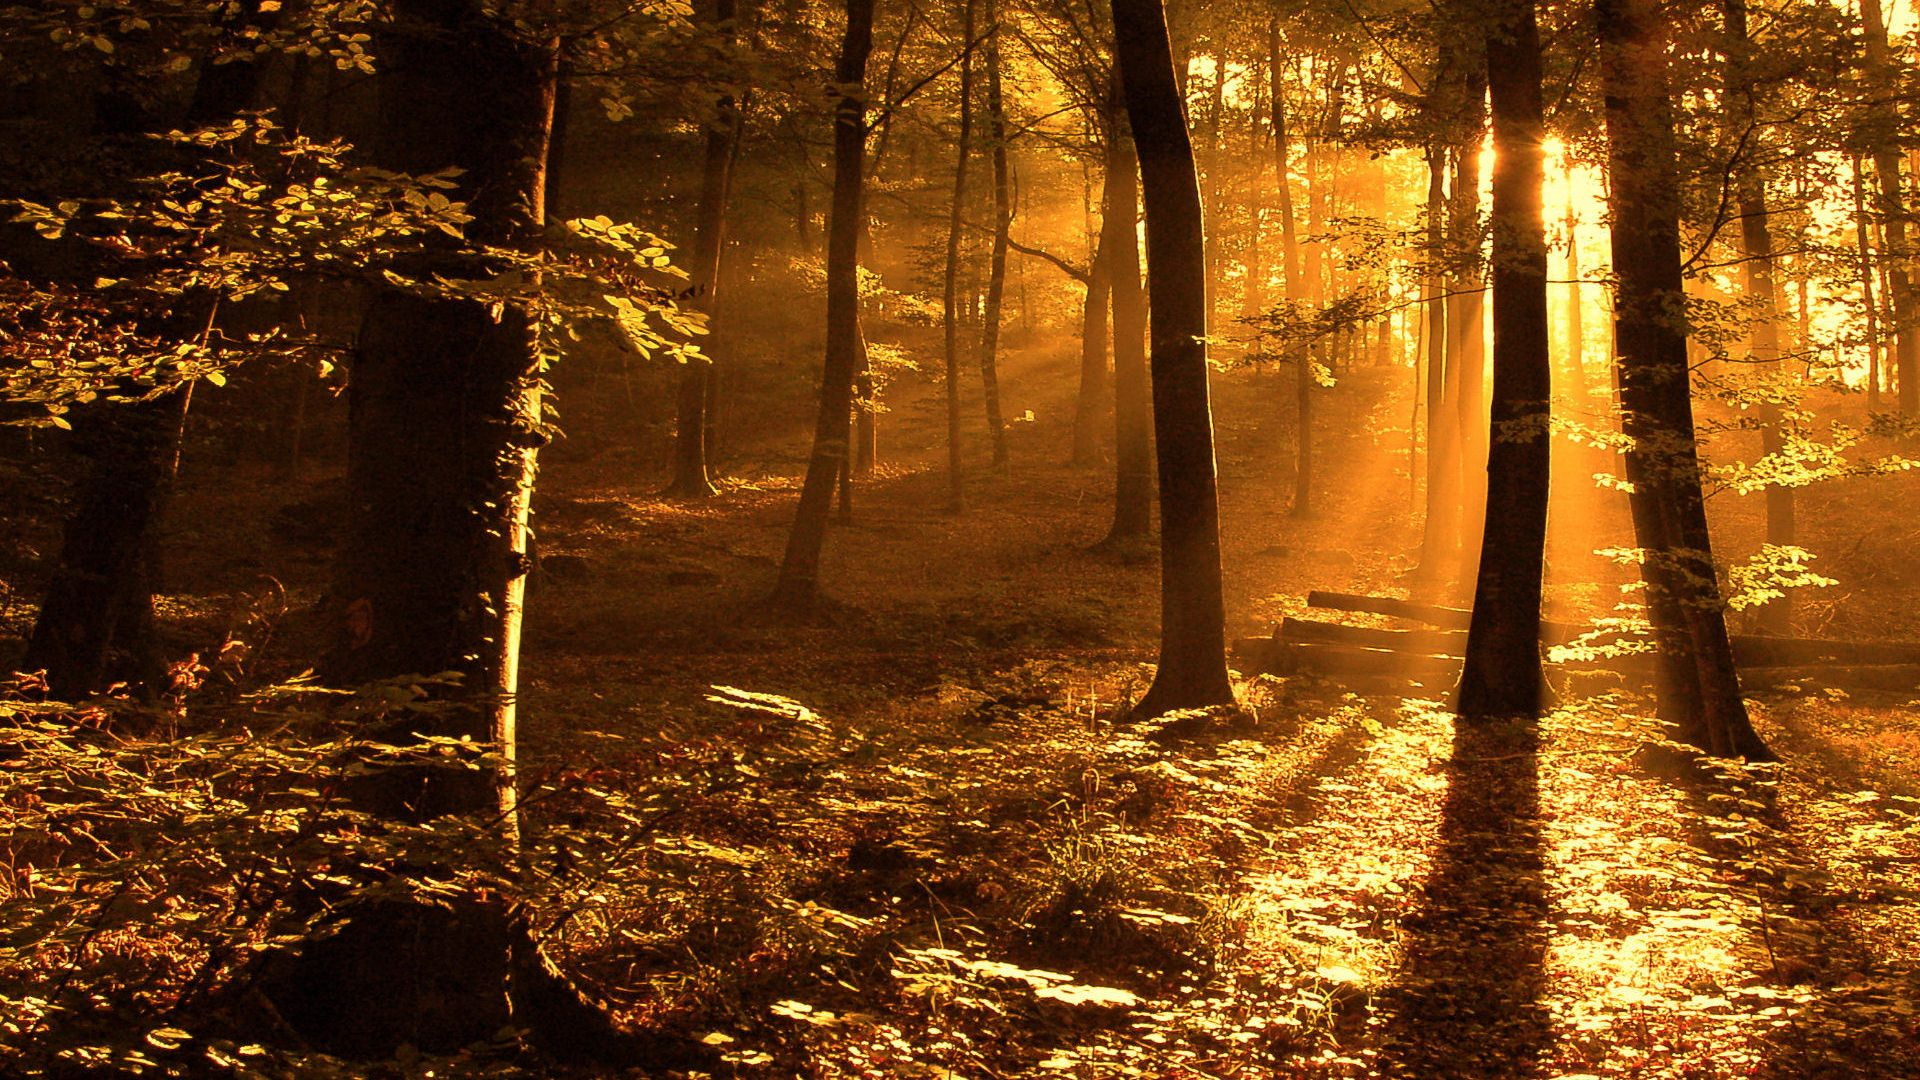 nature forest woods - photo #40